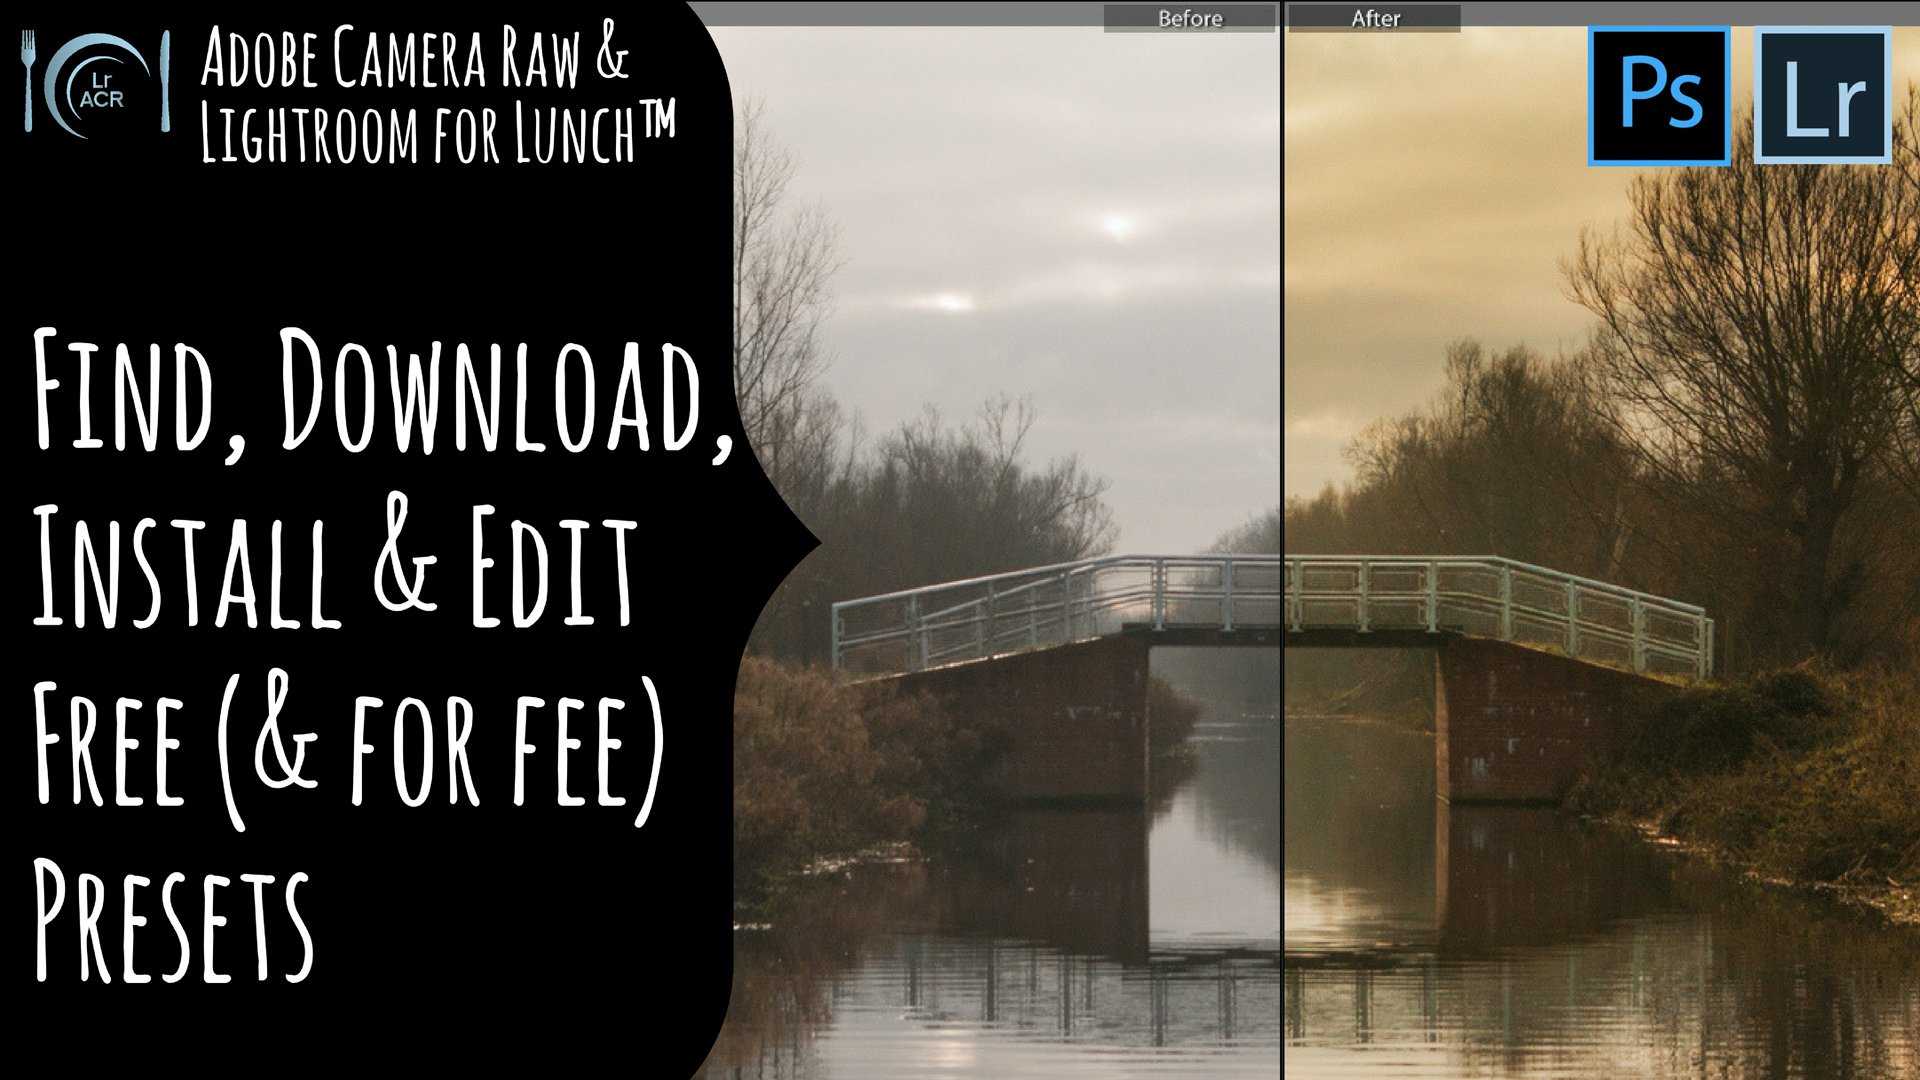 Adobe Camera Raw and Lightroom for Lunch™ - Find, Download